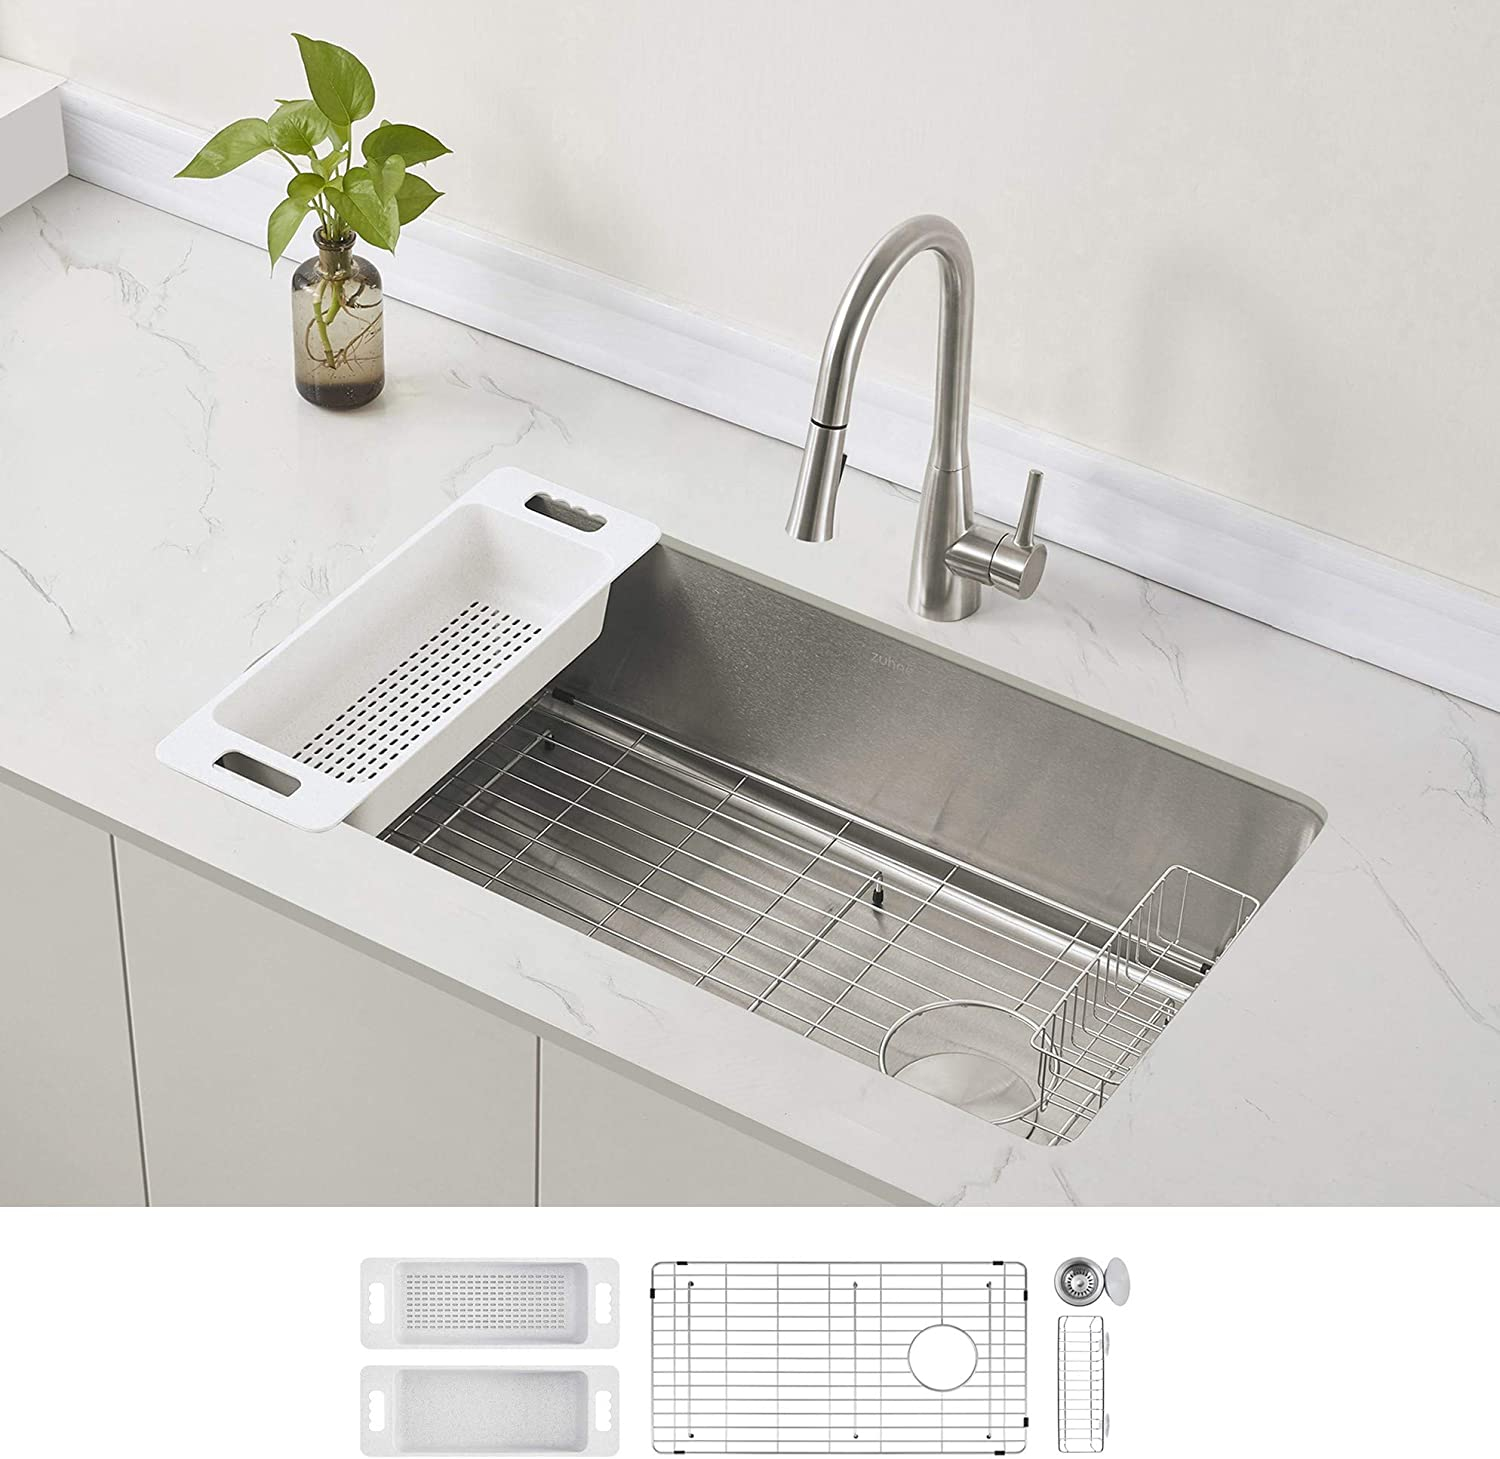 ZUHNE Stainless Steel Single Bowl In stock Max 83% OFF Sink Offset Drain Kitchen with